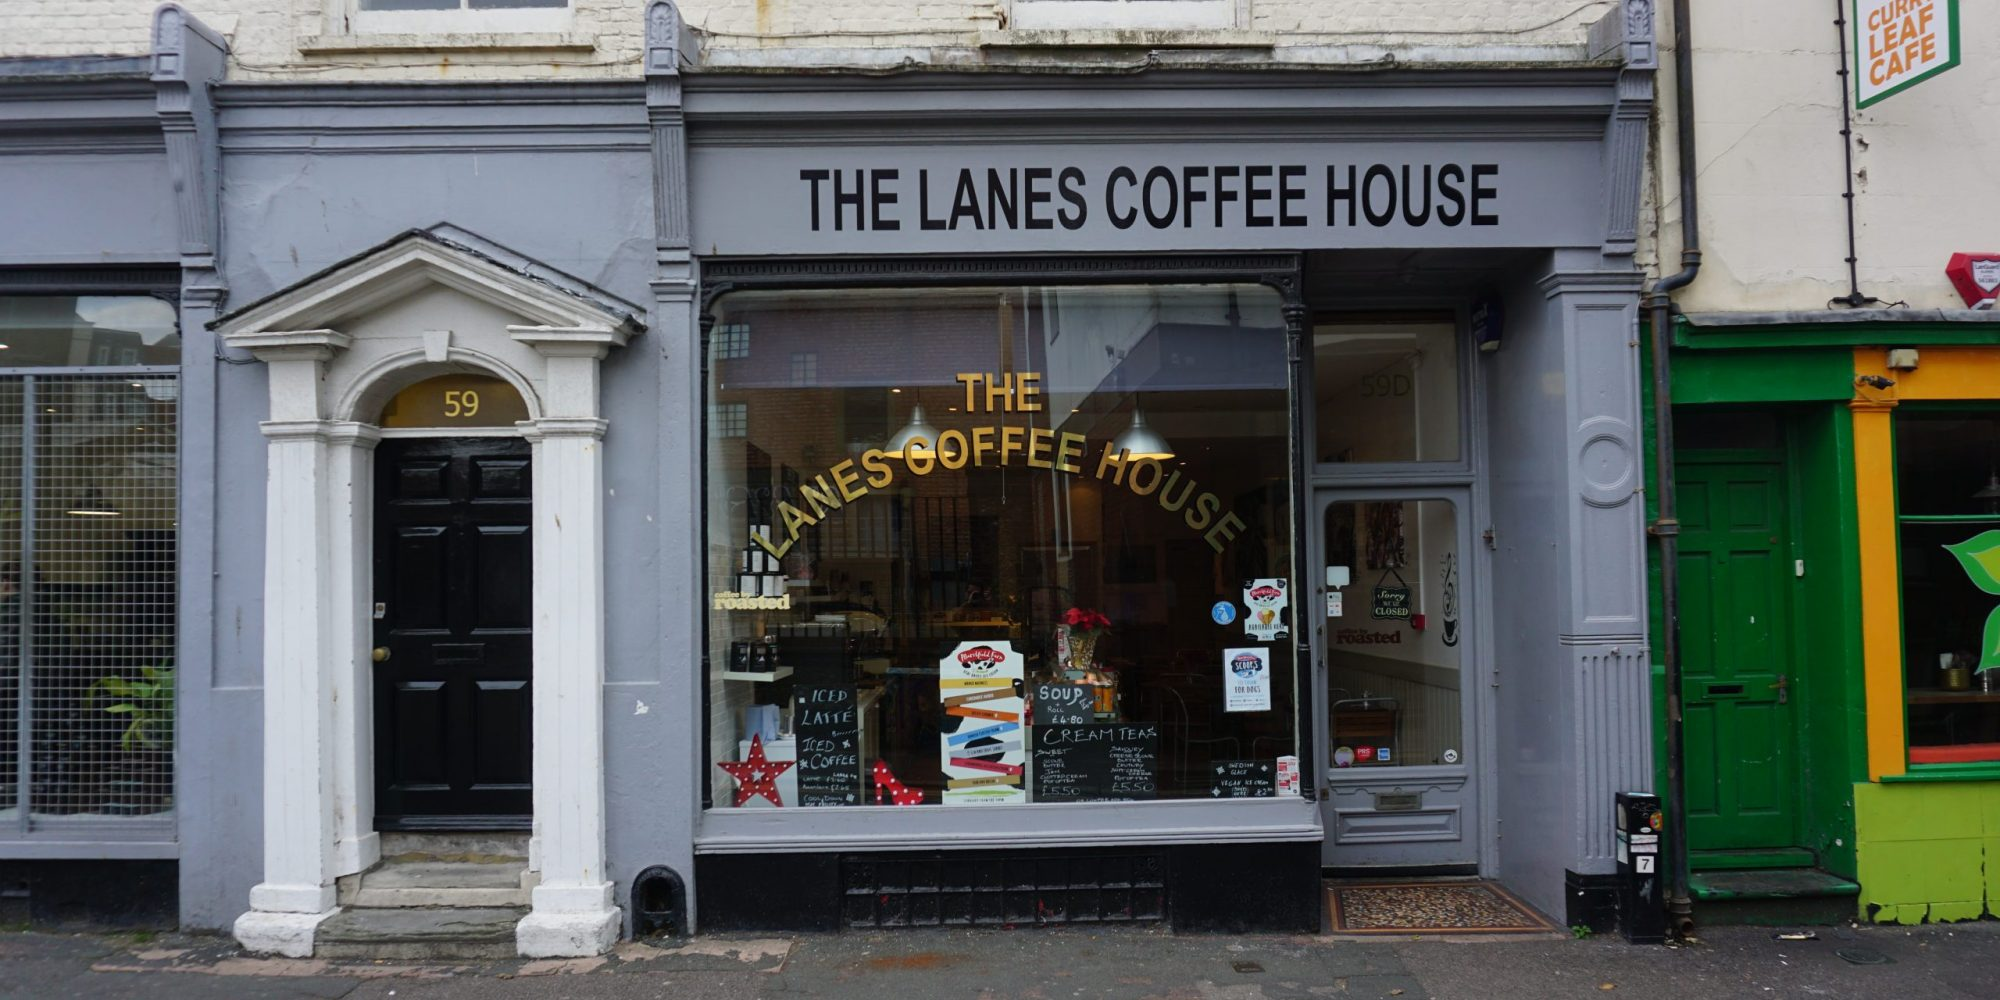 The Lanes Coffee House